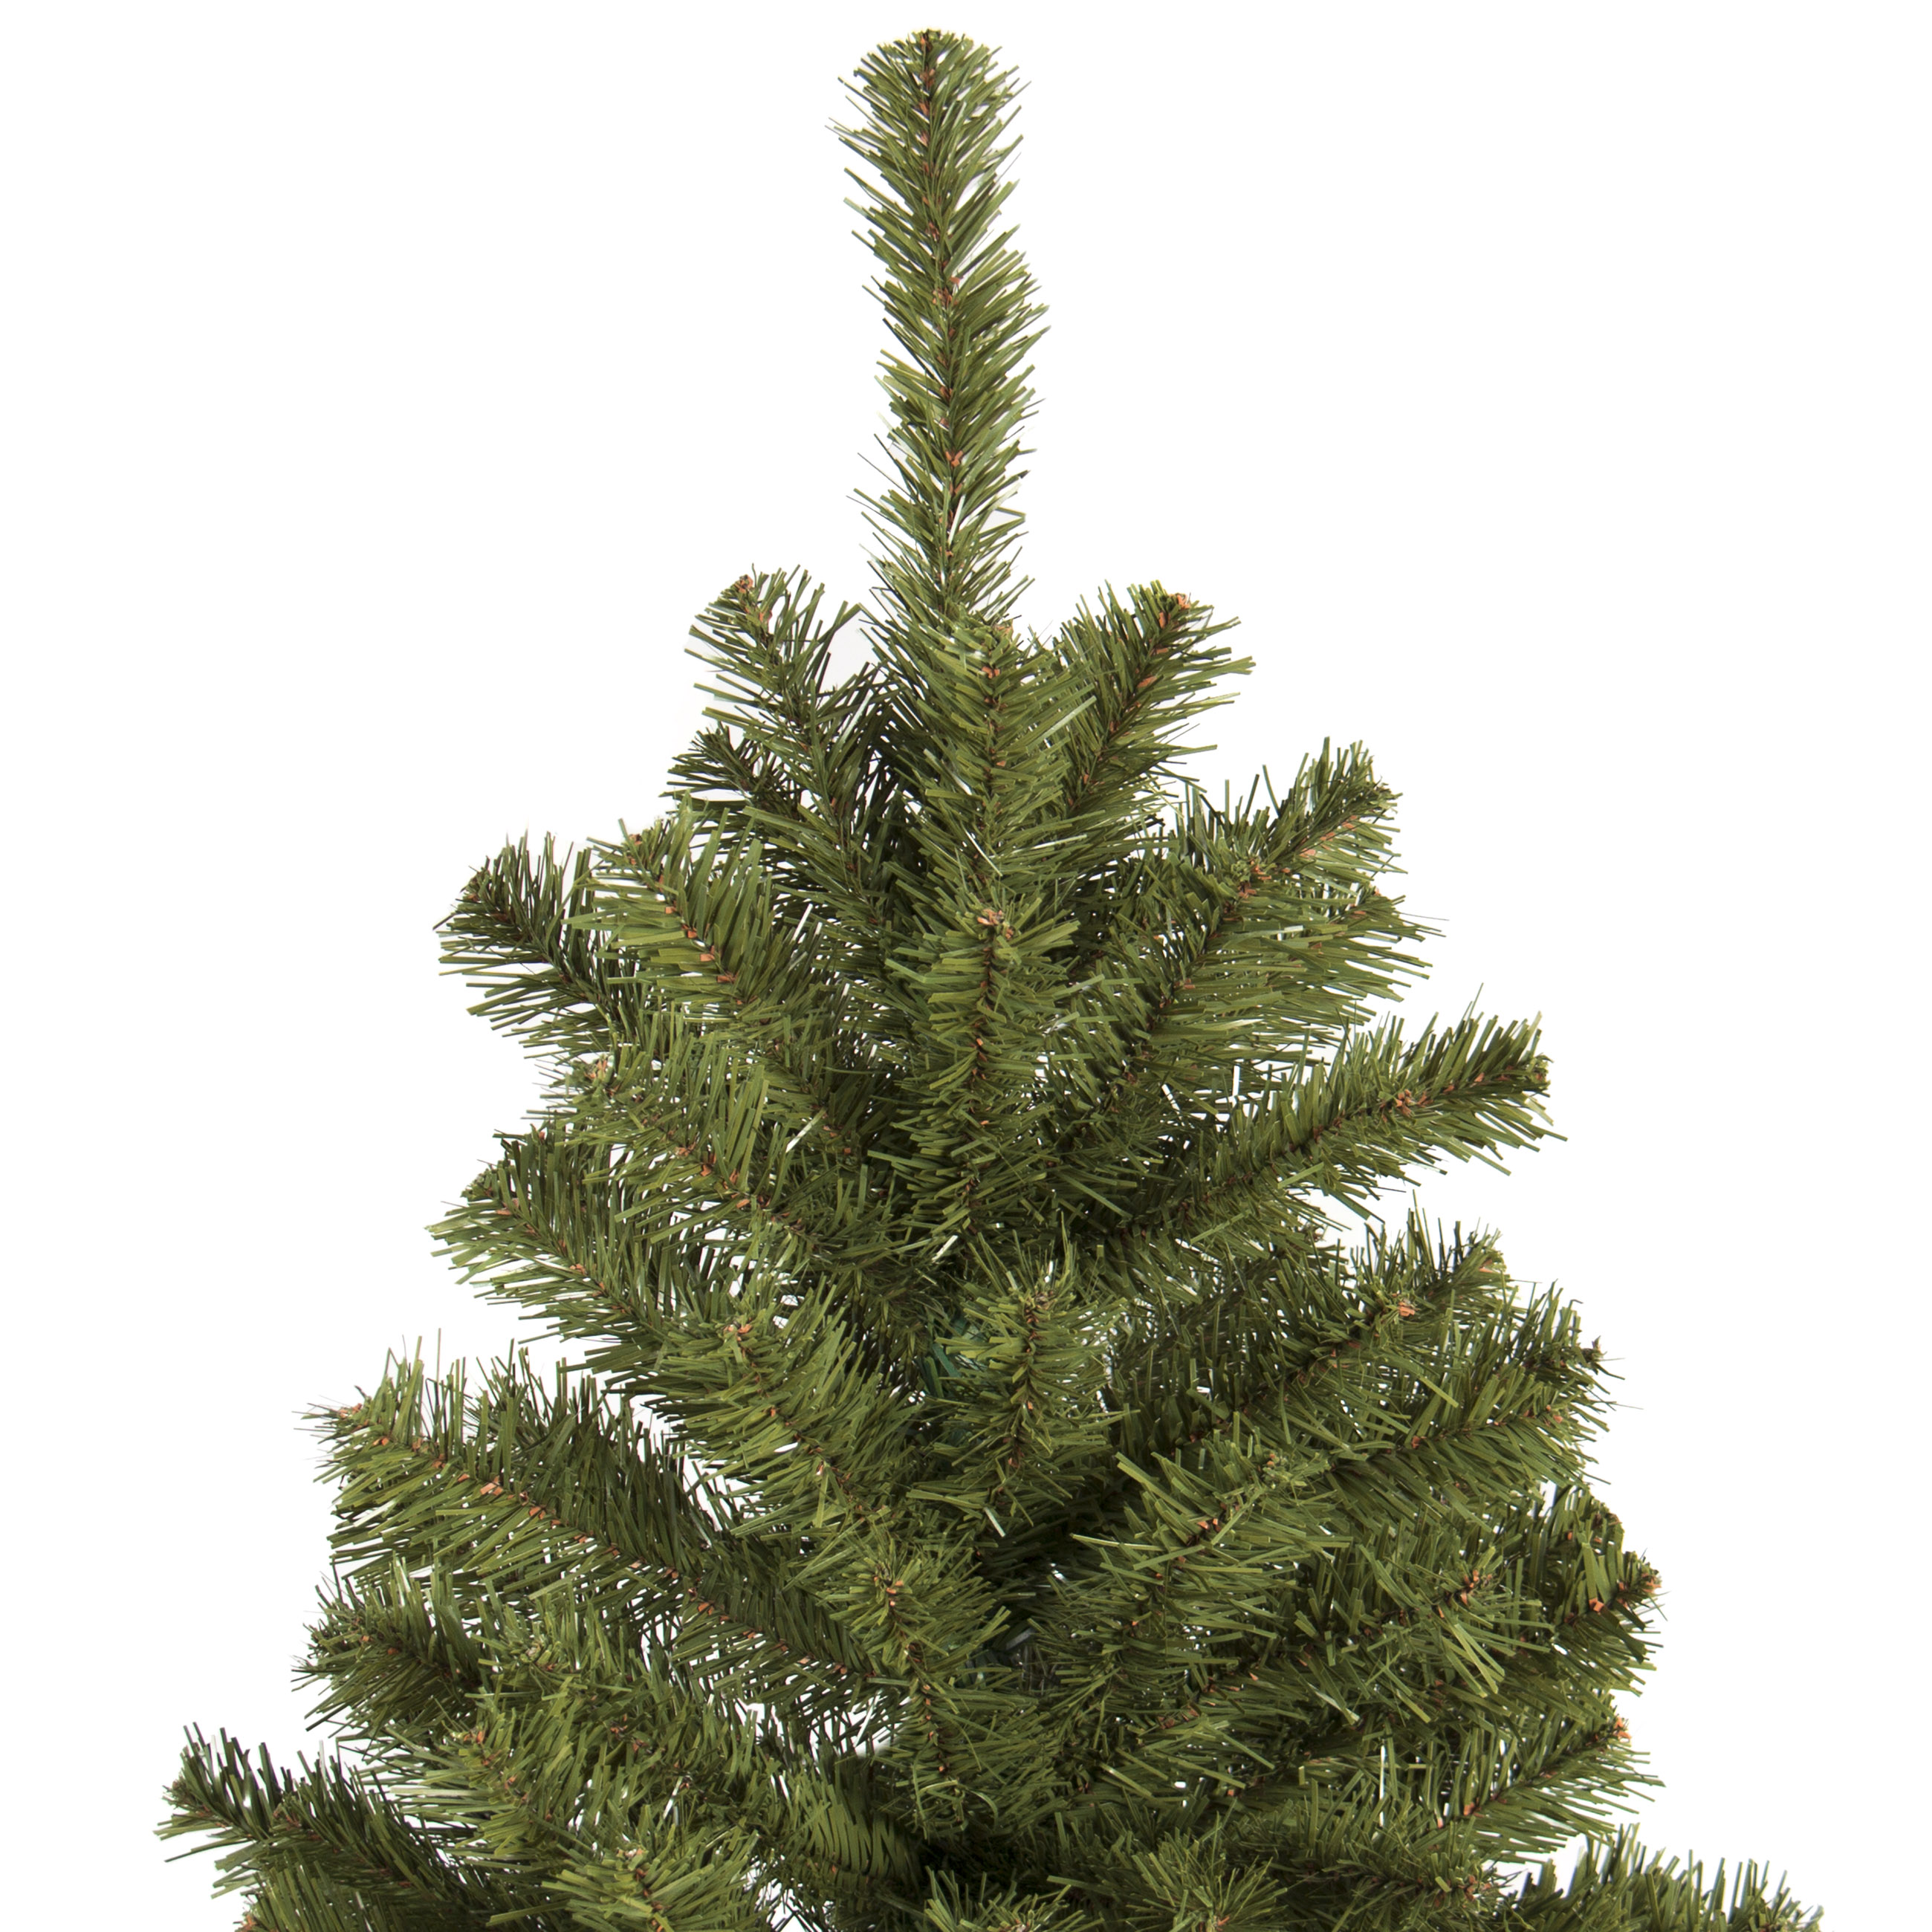 Best Choice Products 7.5u0027 Premium Spruce Hinged Artificial Christmas Tree  W/ Stand   Walmart.com